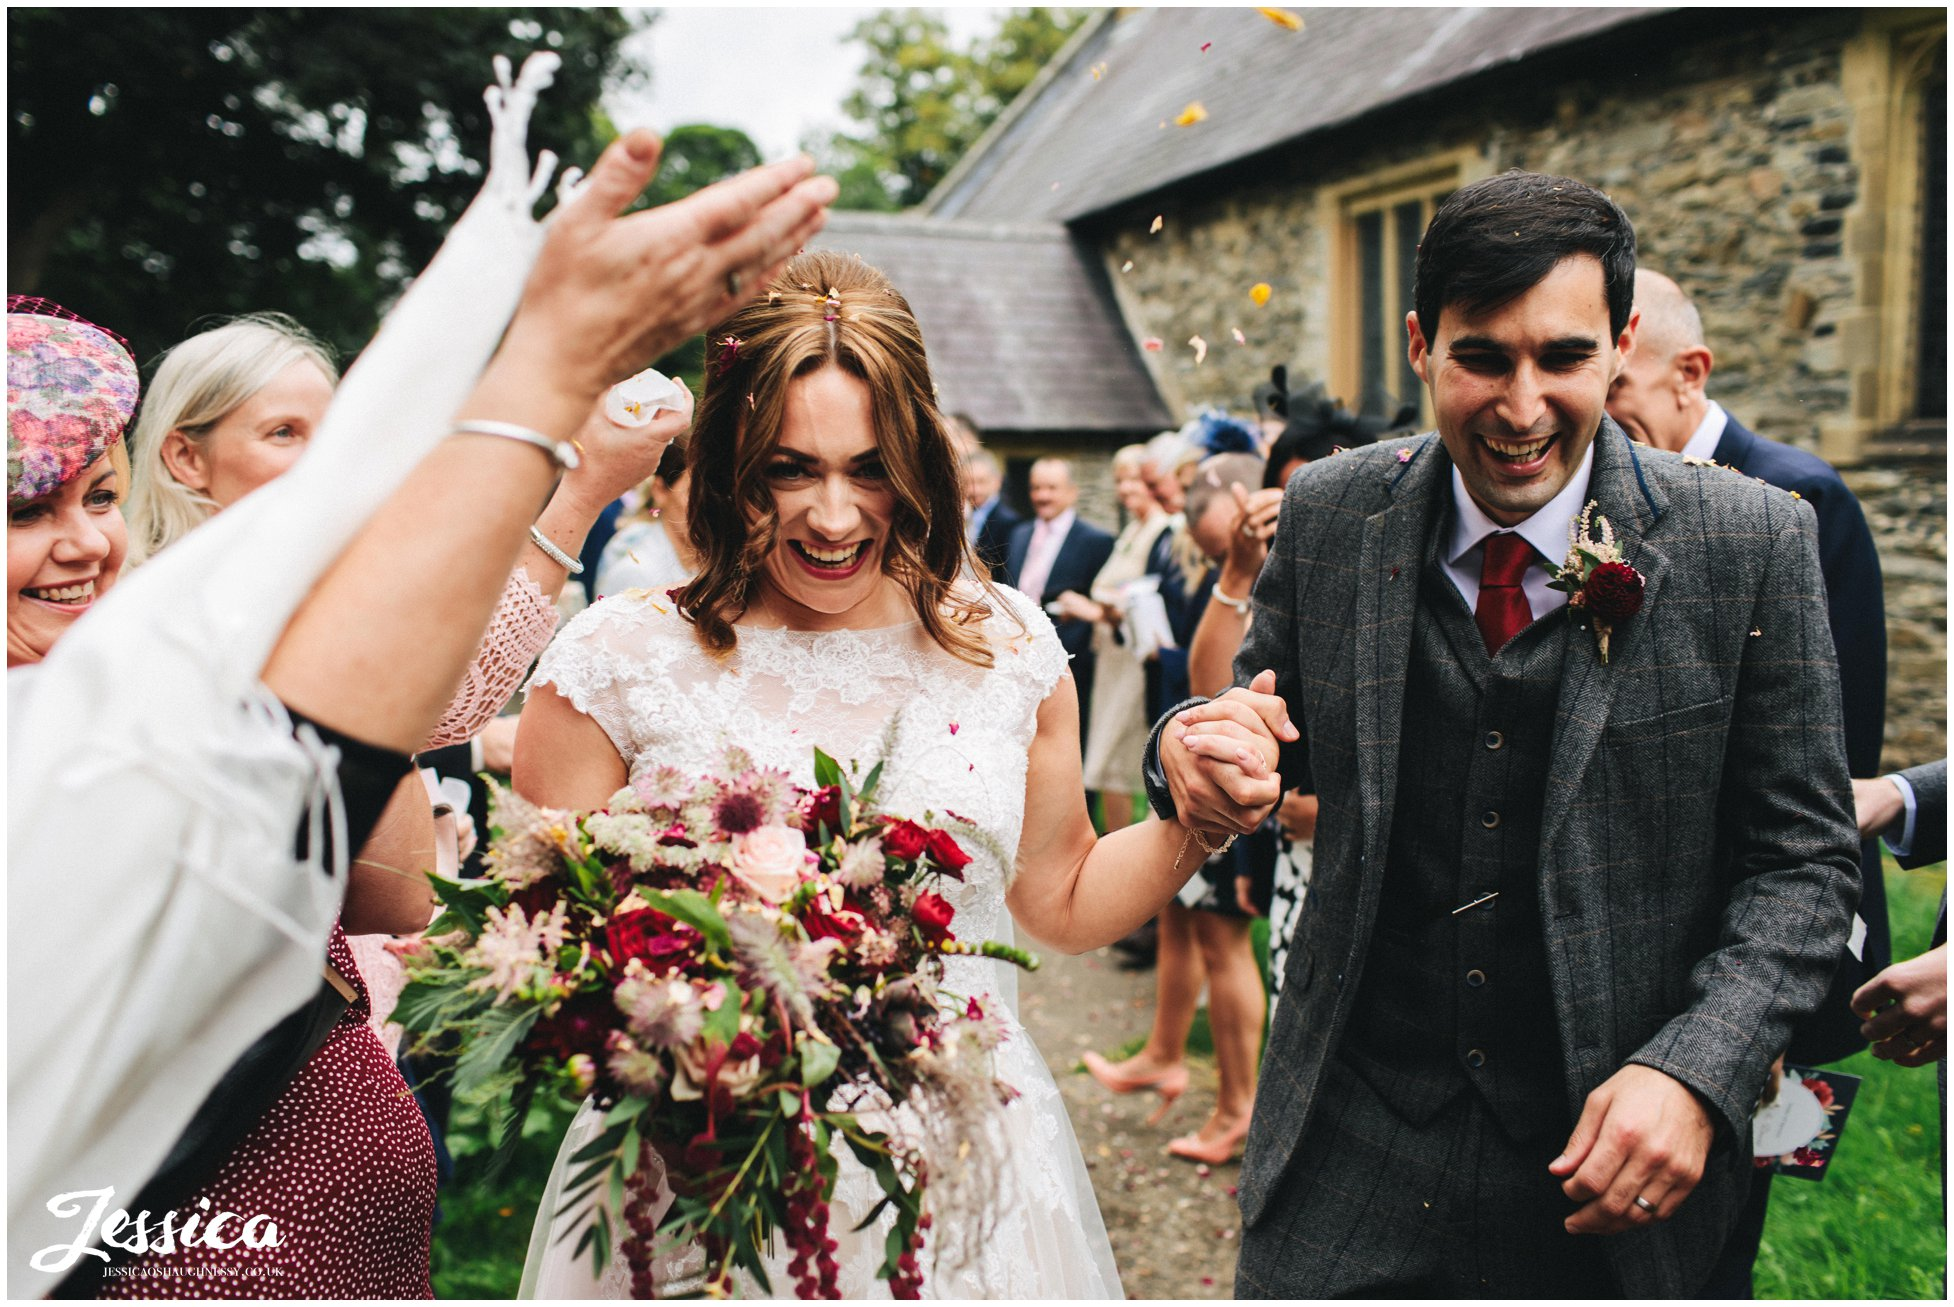 the couple are showered in confetti at Llantysilio church, north wales